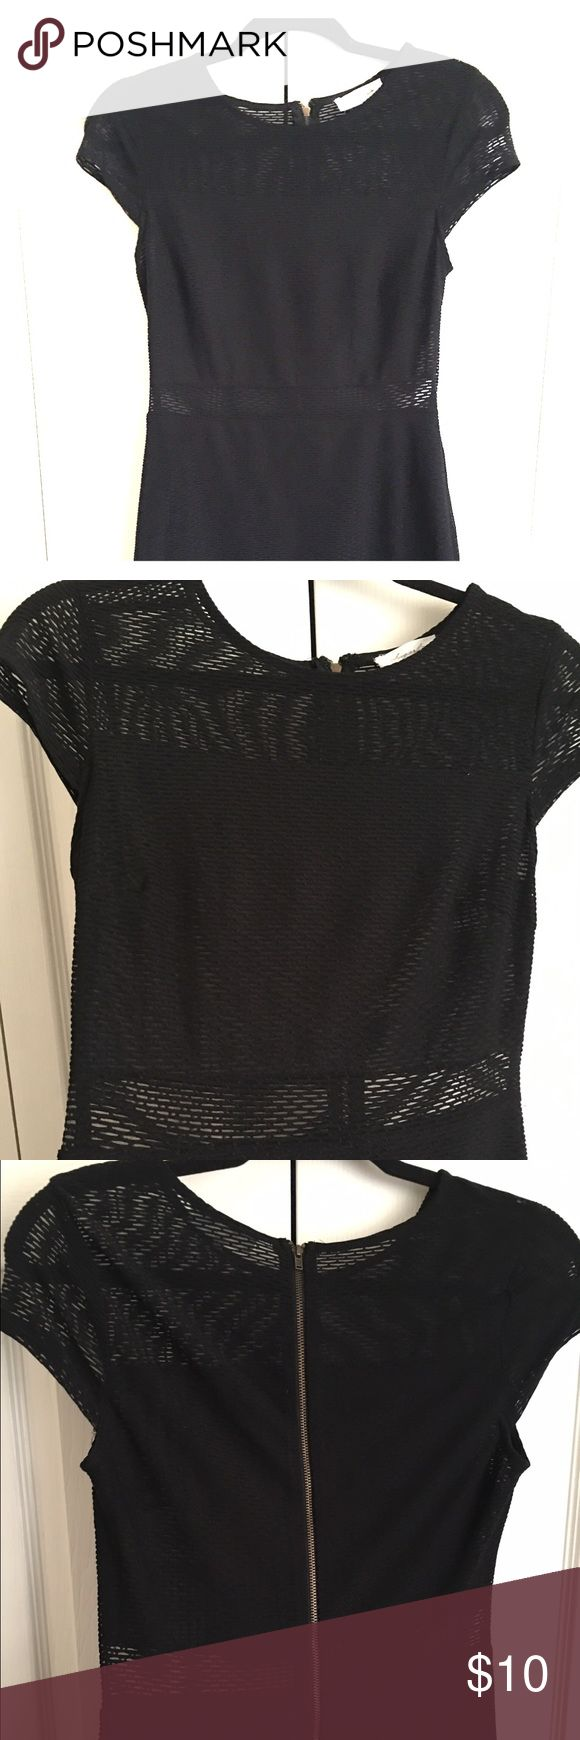 Mesh BodyCon Dress Short sleeved mesh see through trim BodyCon Dress. Very snug fit, perfect for a night out. Dresses